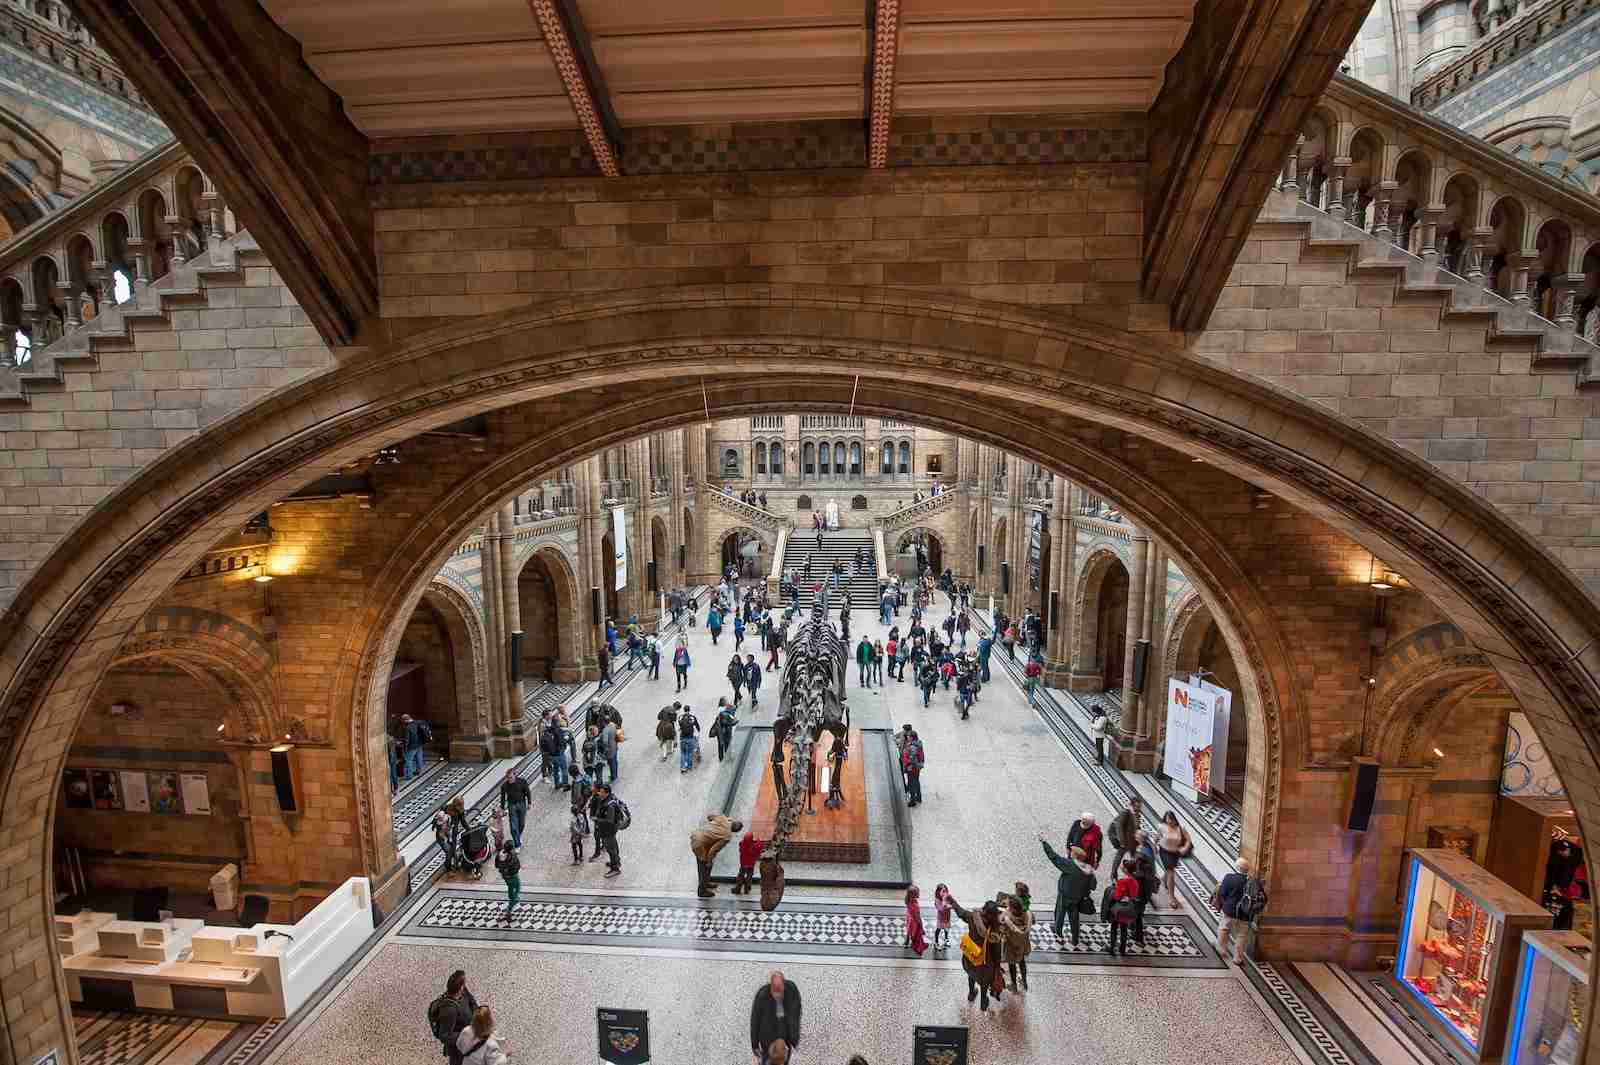 The Natural History Museum of London. (Photo by Tim Grist/Getty Images)